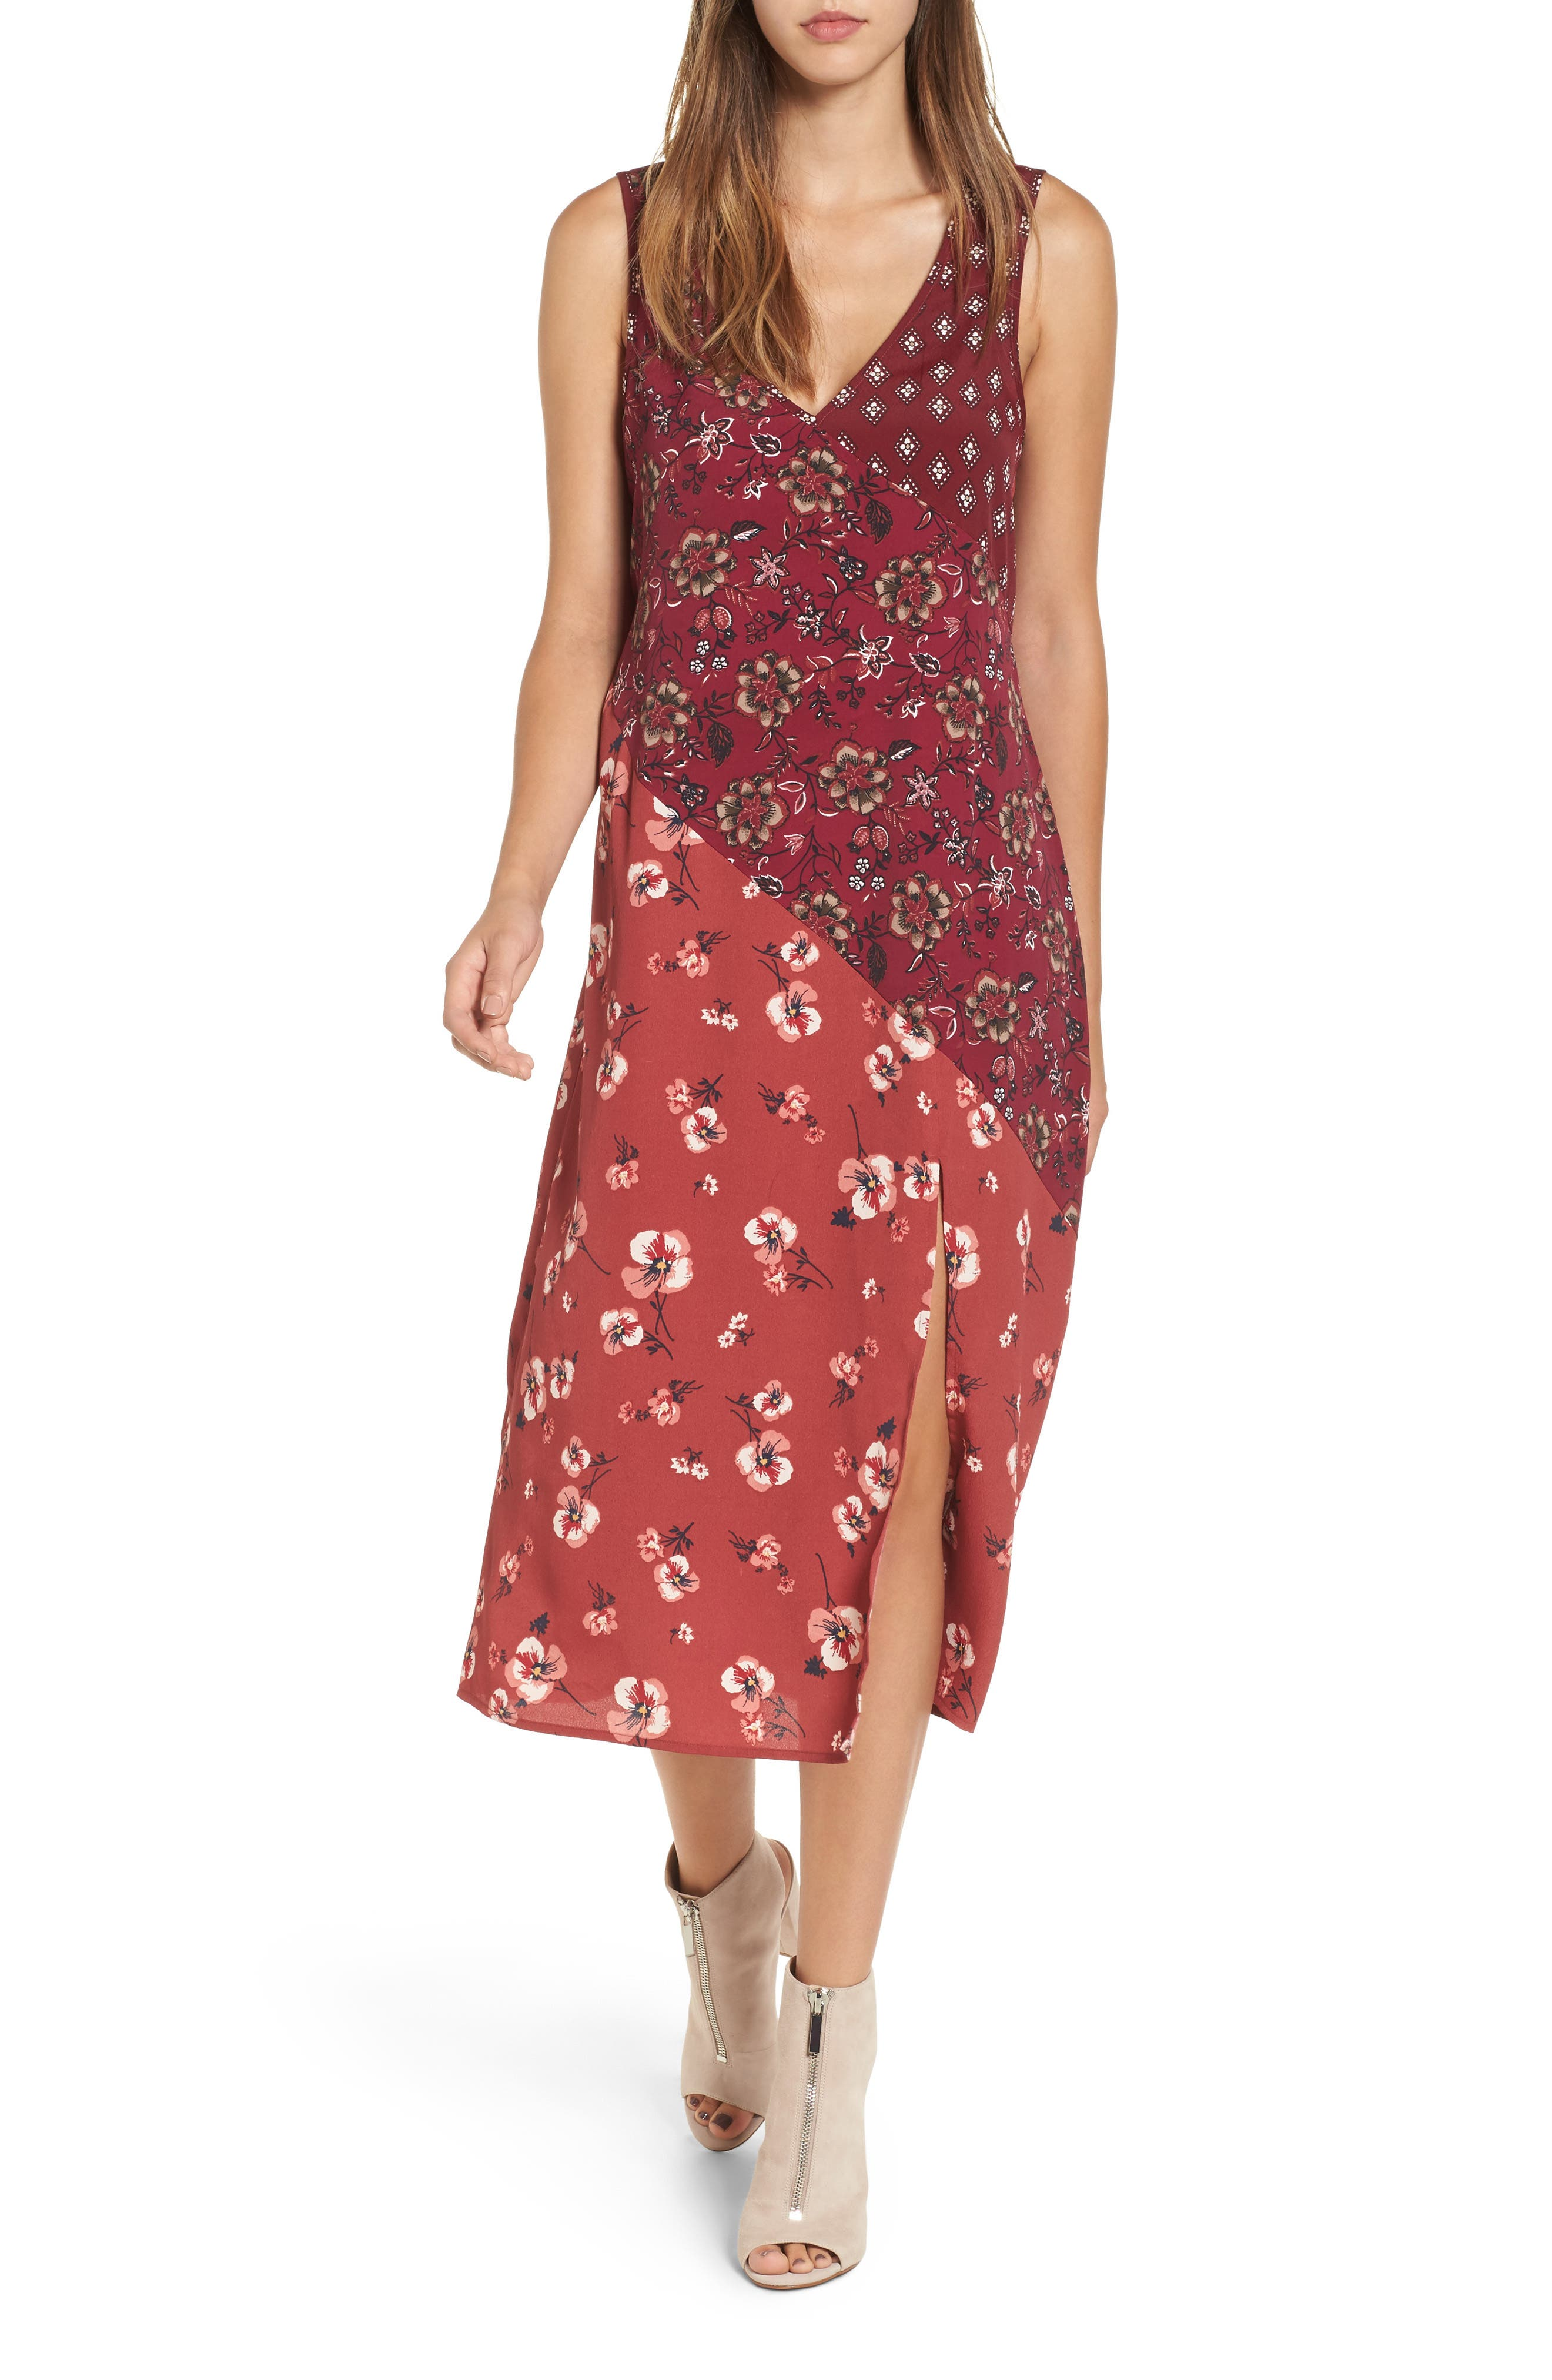 Band of Gypsies Mix Print Midi Dress